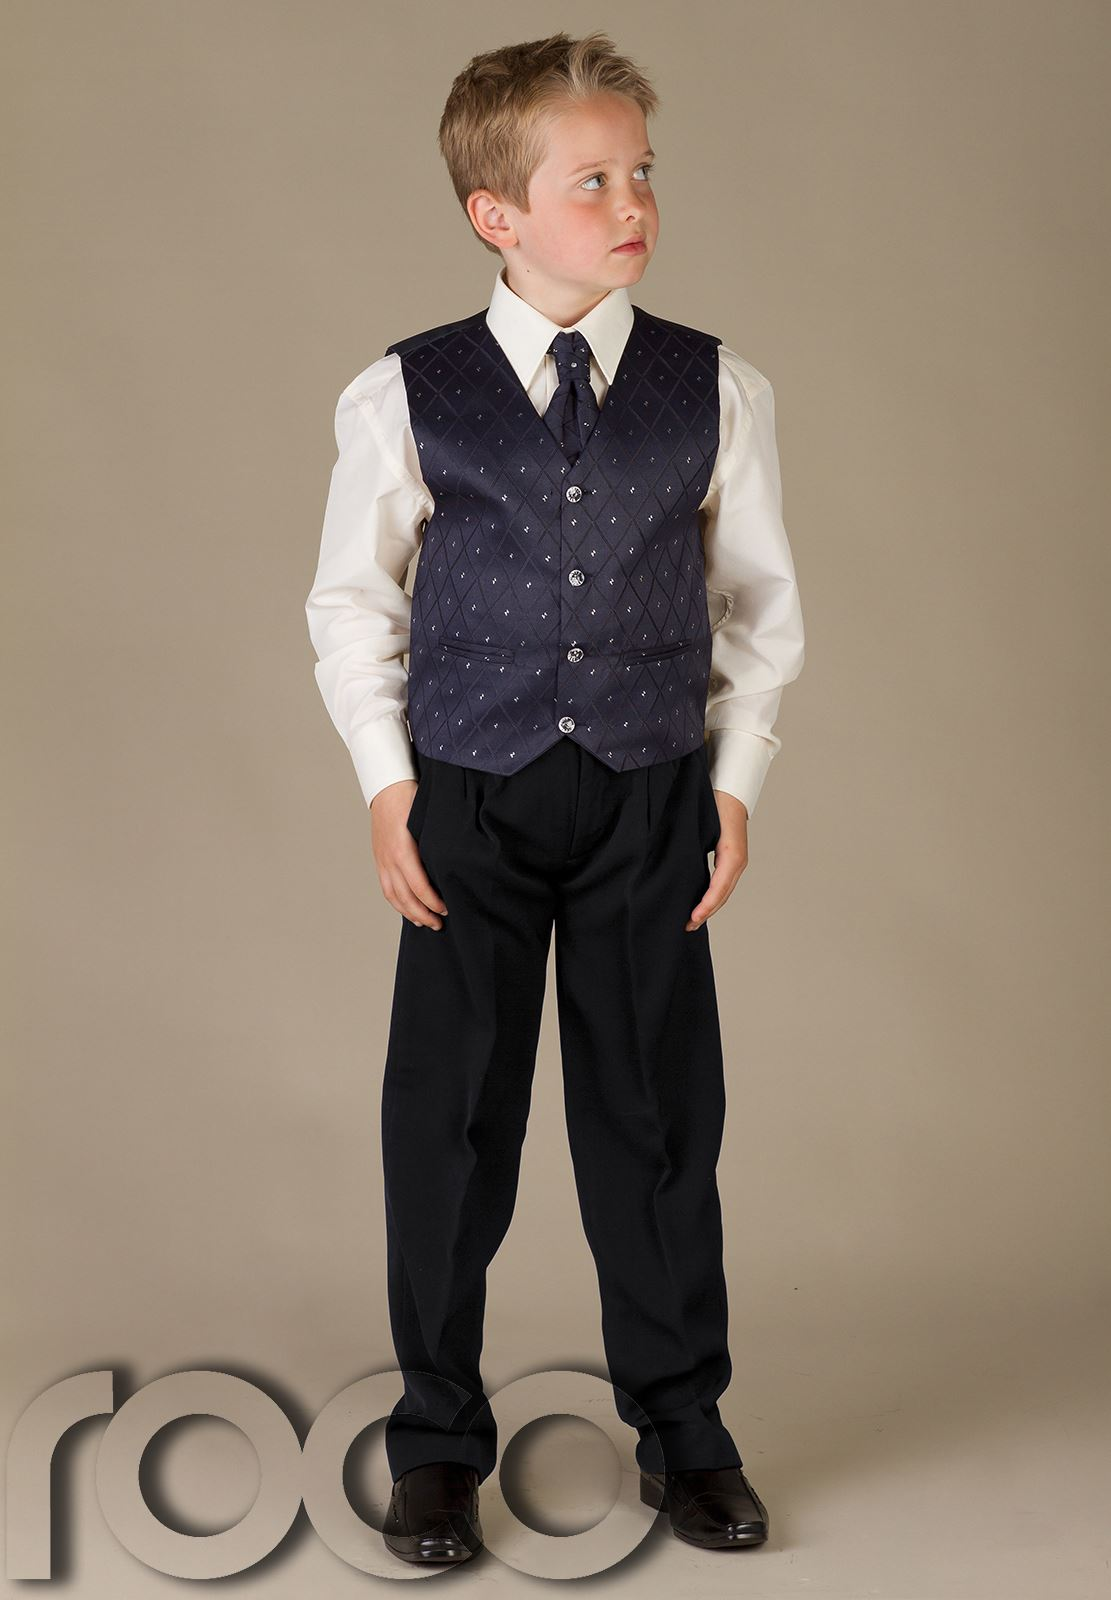 Boys Wedding Suits: Color Choices – Carey Fashion